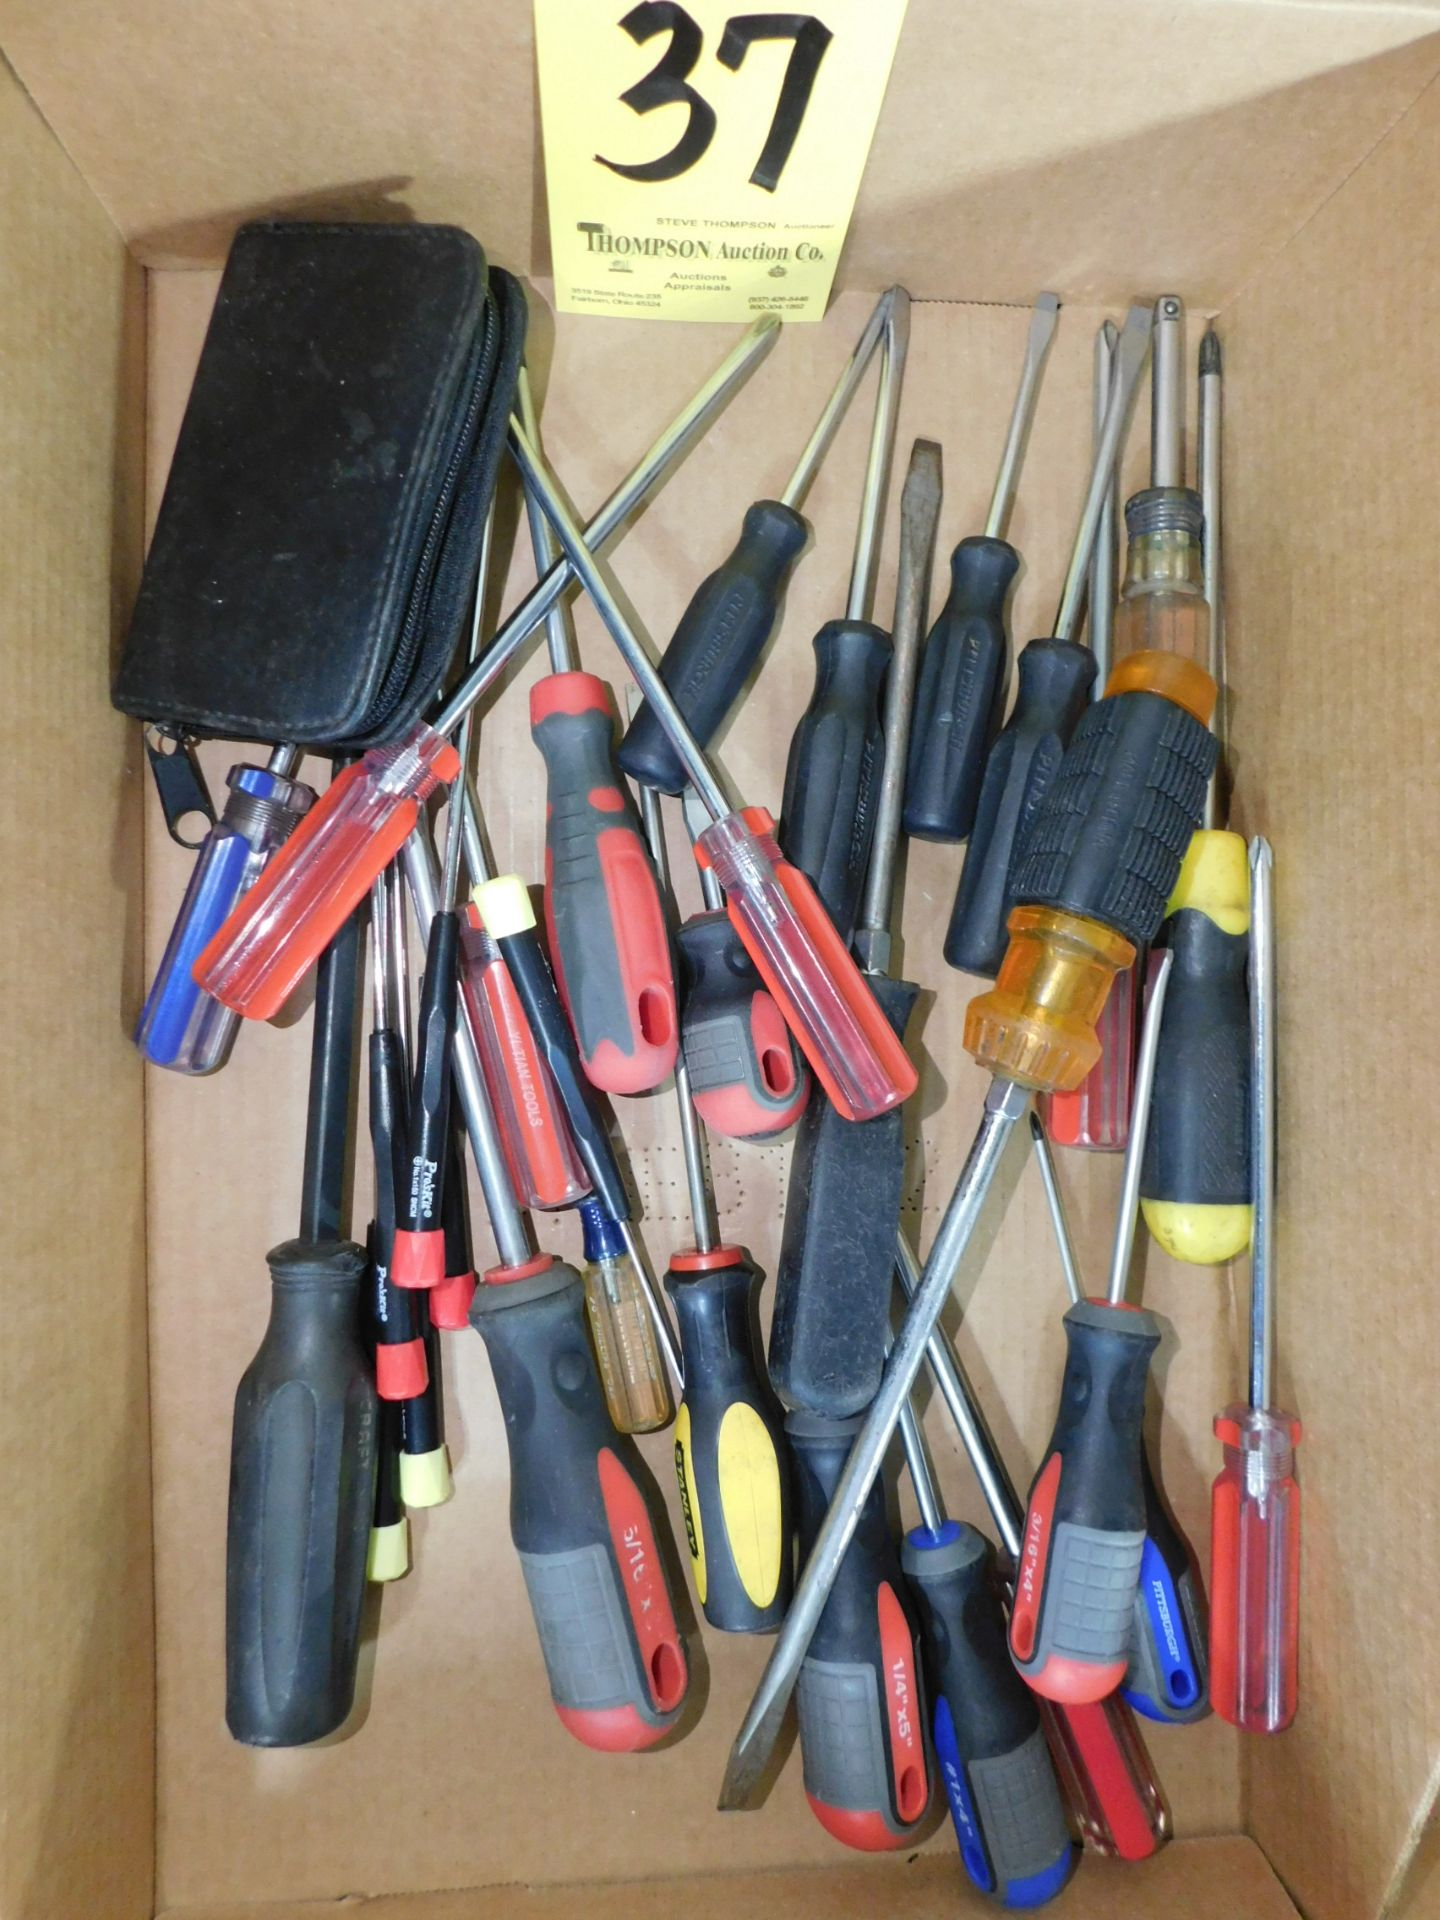 Lot 37 - Screw Drivers, Lot Location 3204 Olympia Dr. A, Lafayette, IN 47909